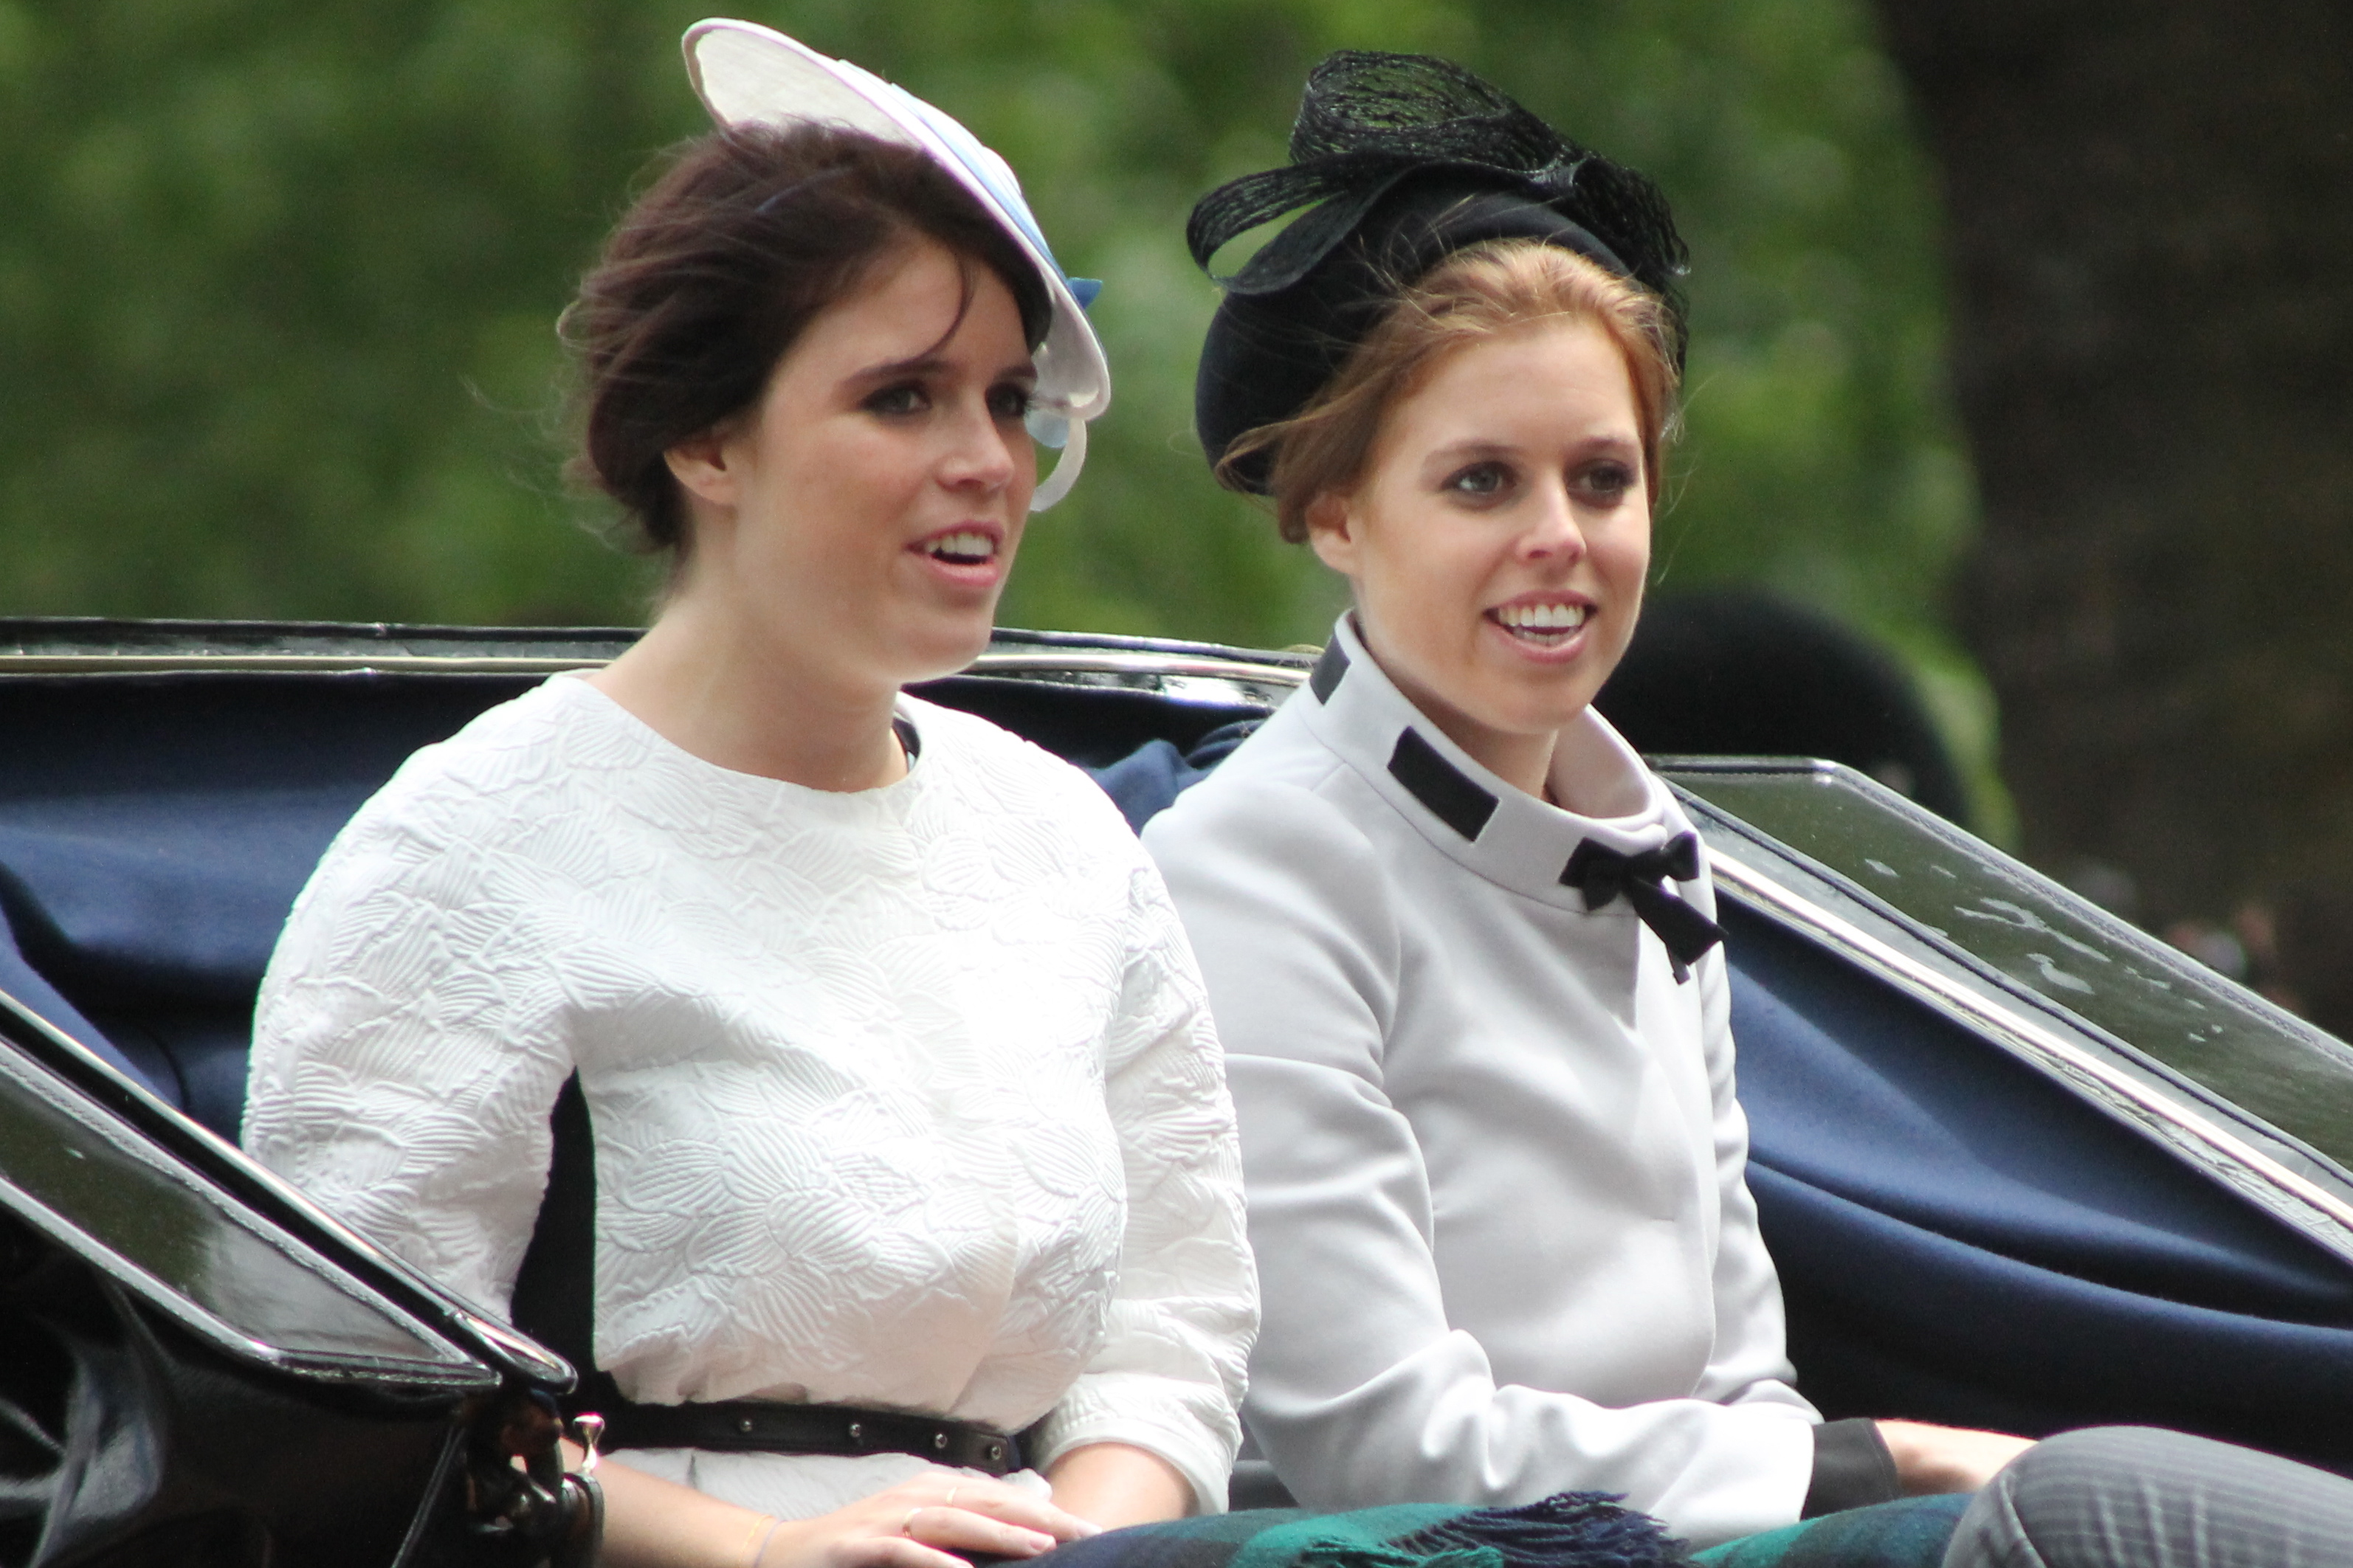 Les monarchies aujourd'hui .  Princesses_Beatrice_and_Eugenie